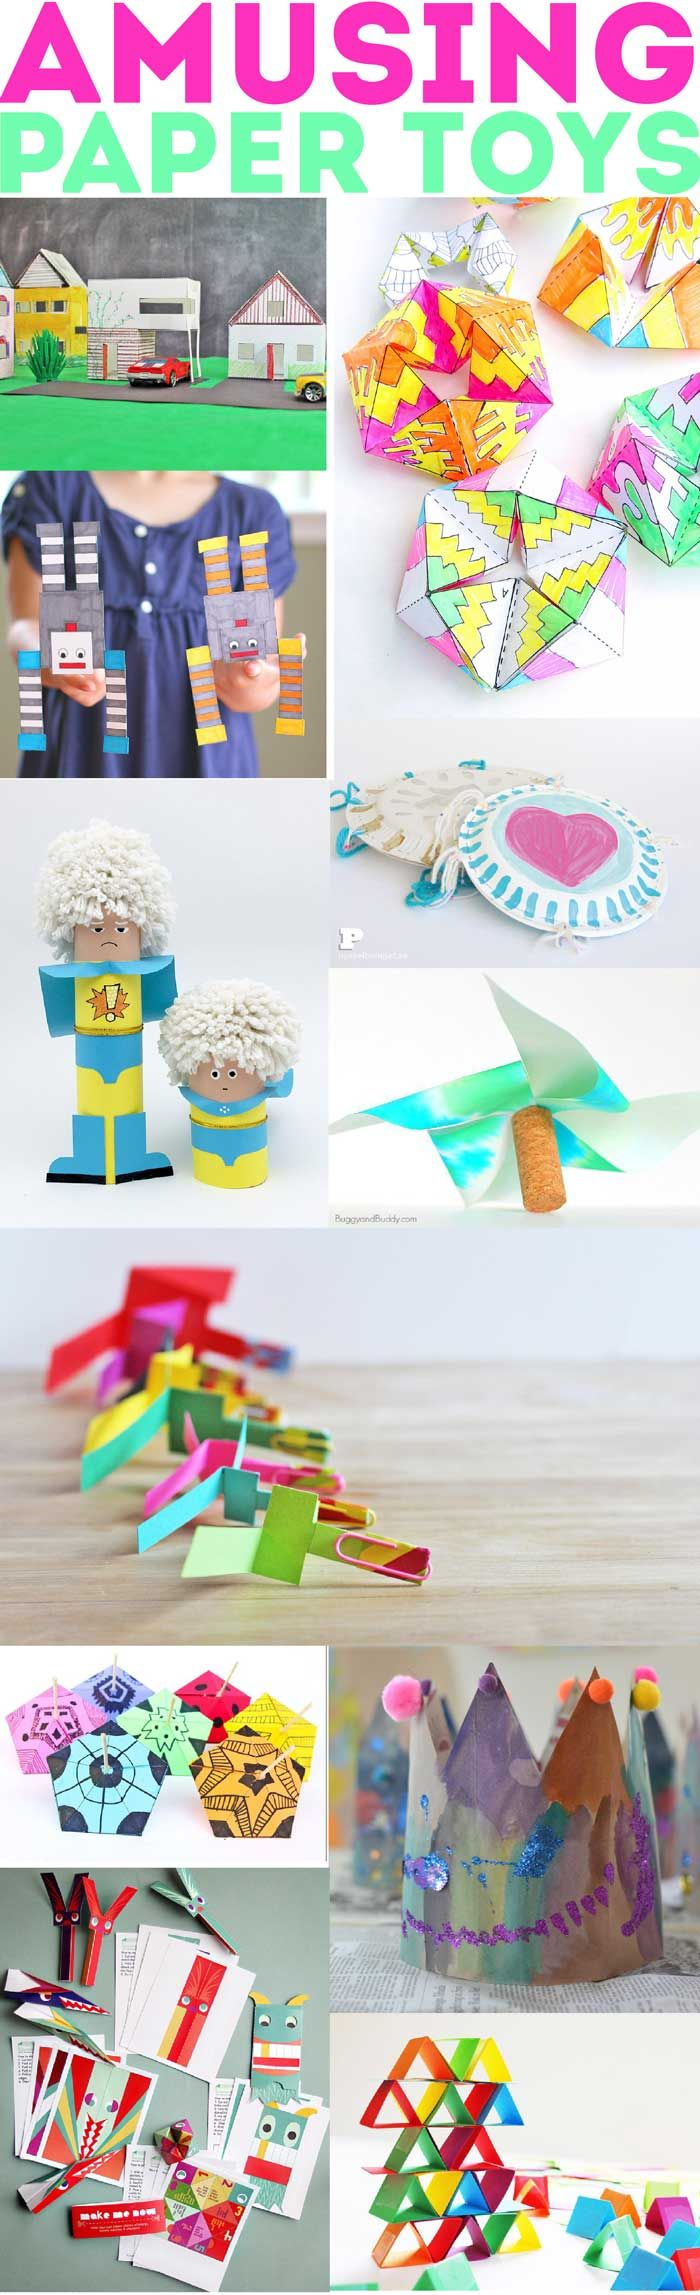 3883 best images about art and crafts for kids on for Crafts to make with toddlers